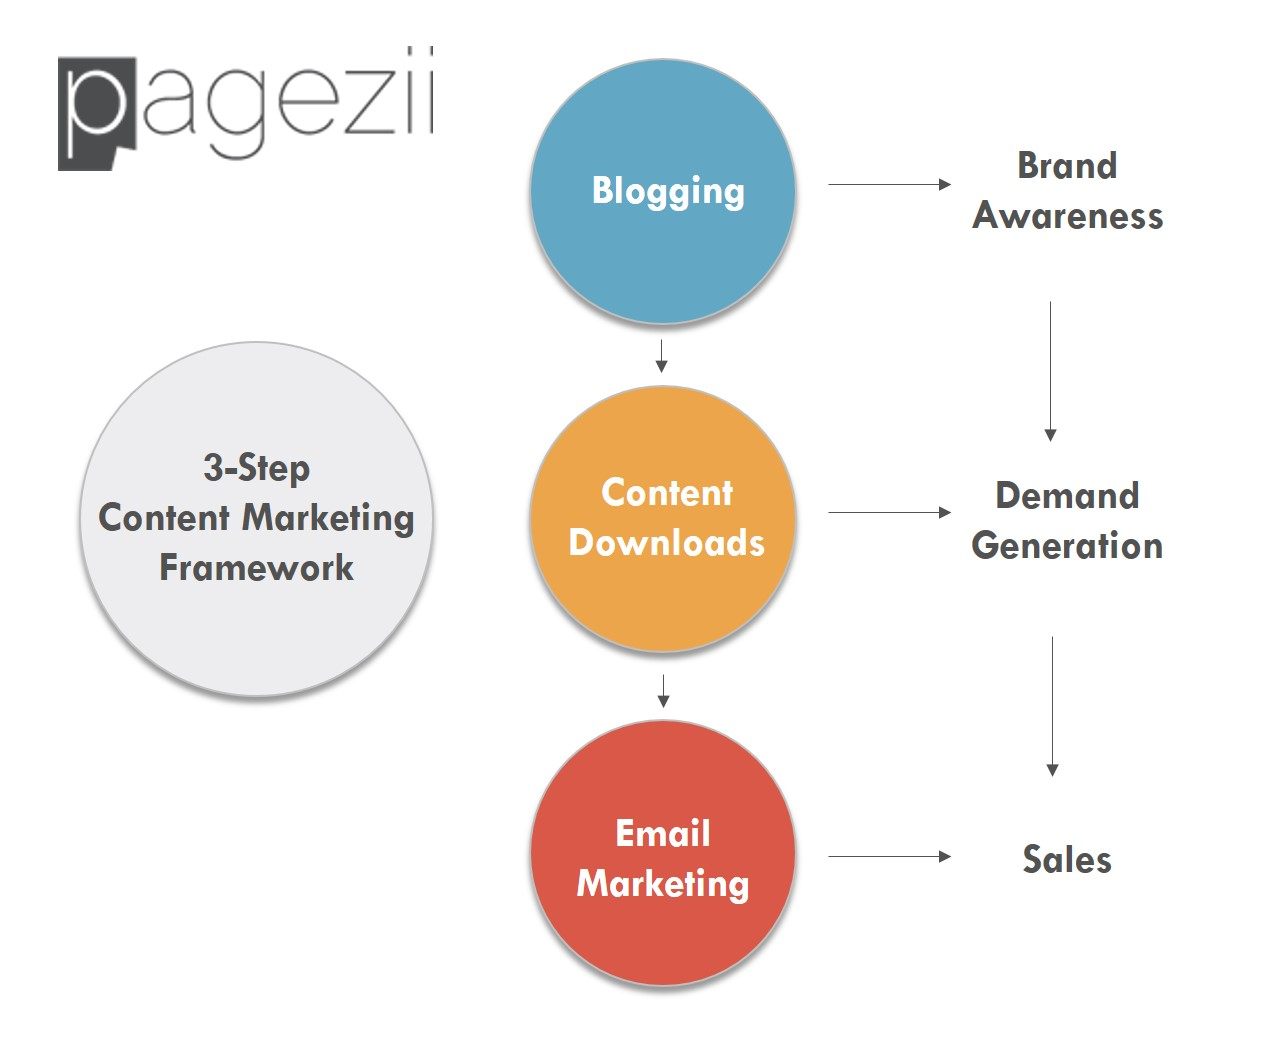 Content Marketing Framework Diagram Blogging Content Downloads Email marketing Brand Awareness Demand Generation Sales Pagezii Digital Marketing Blog